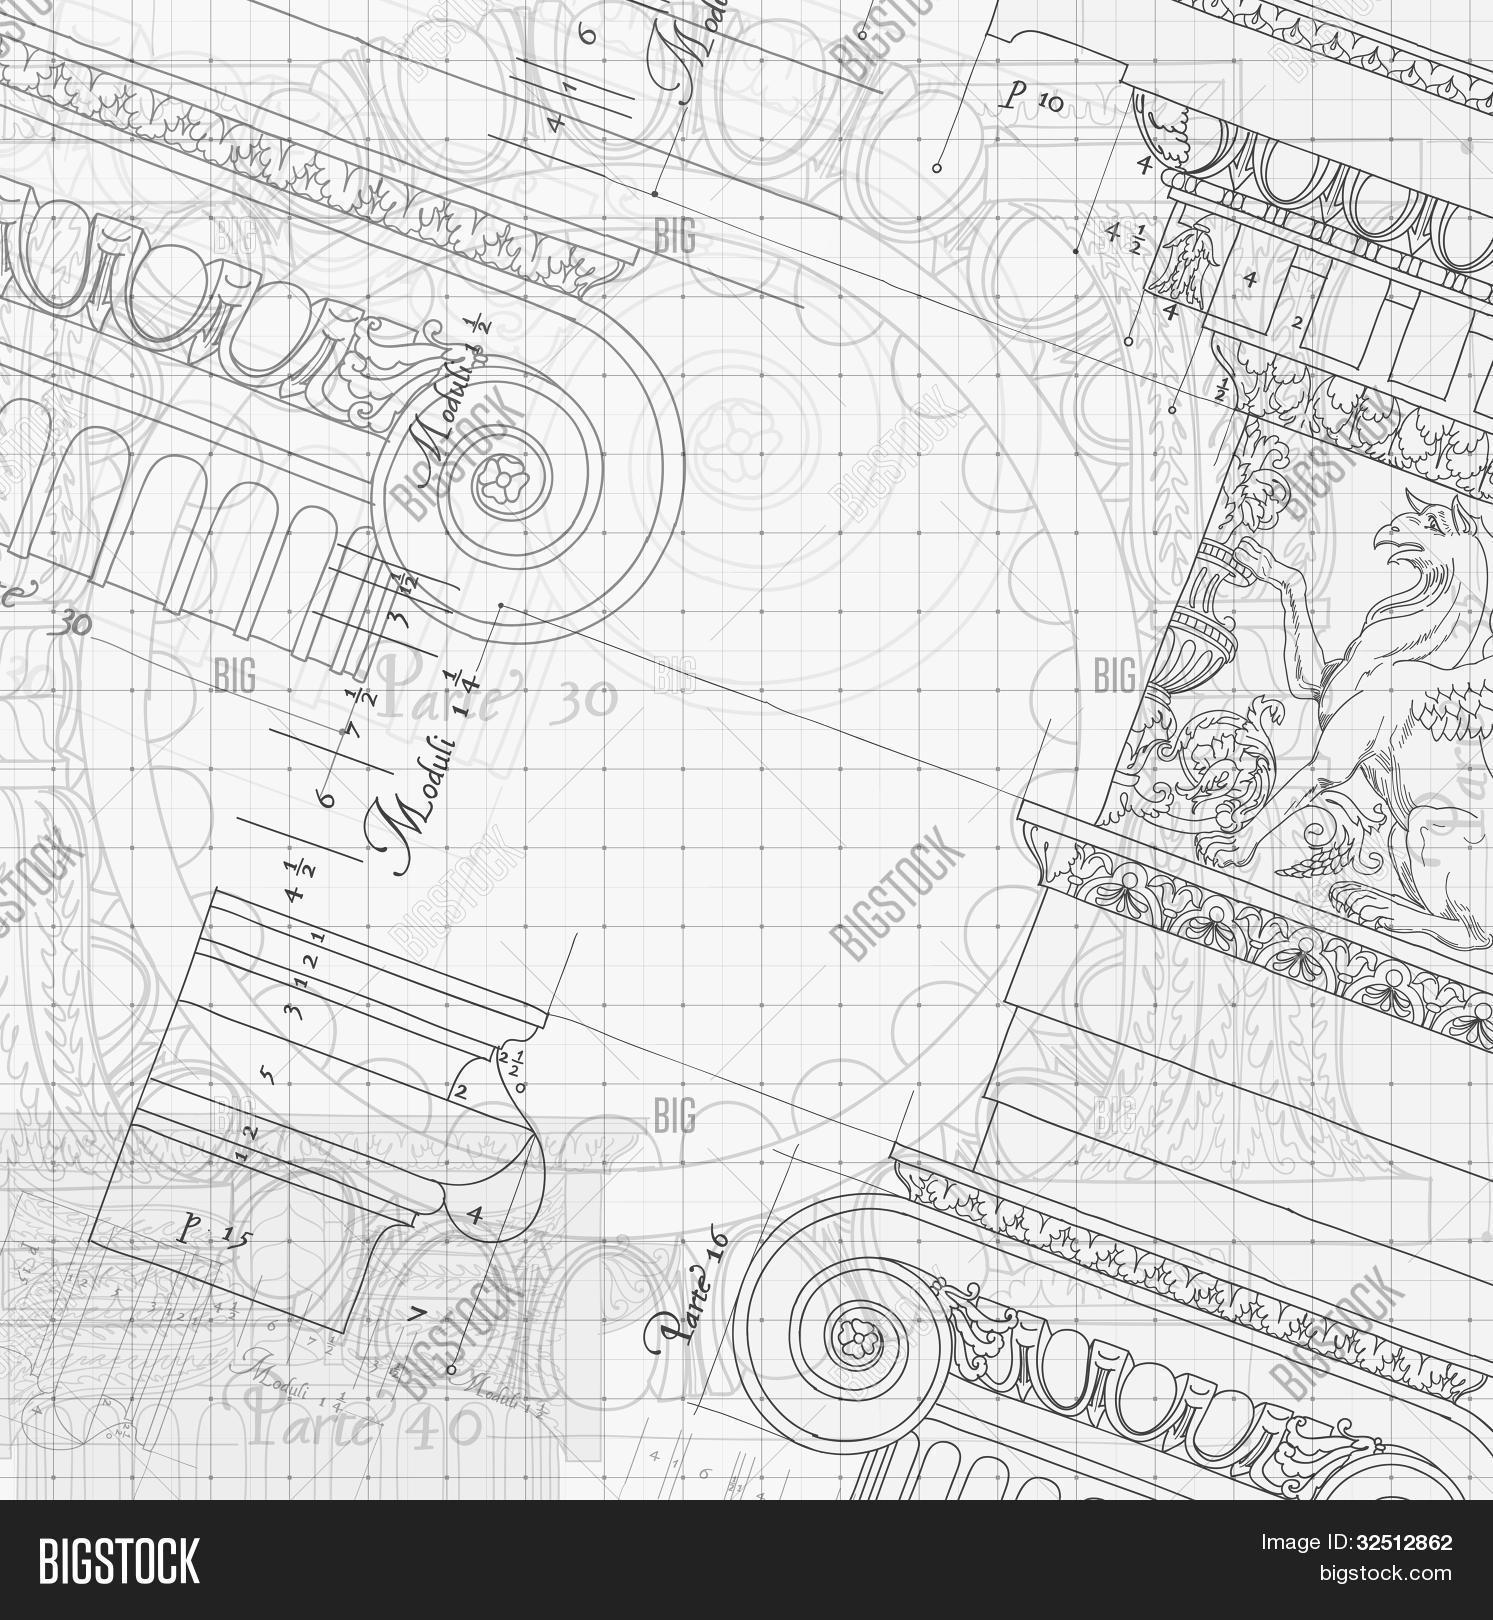 Blueprint hand draw image photo free trial bigstock blueprint hand draw sketch ionic architectural order based the five orders of architecture malvernweather Image collections